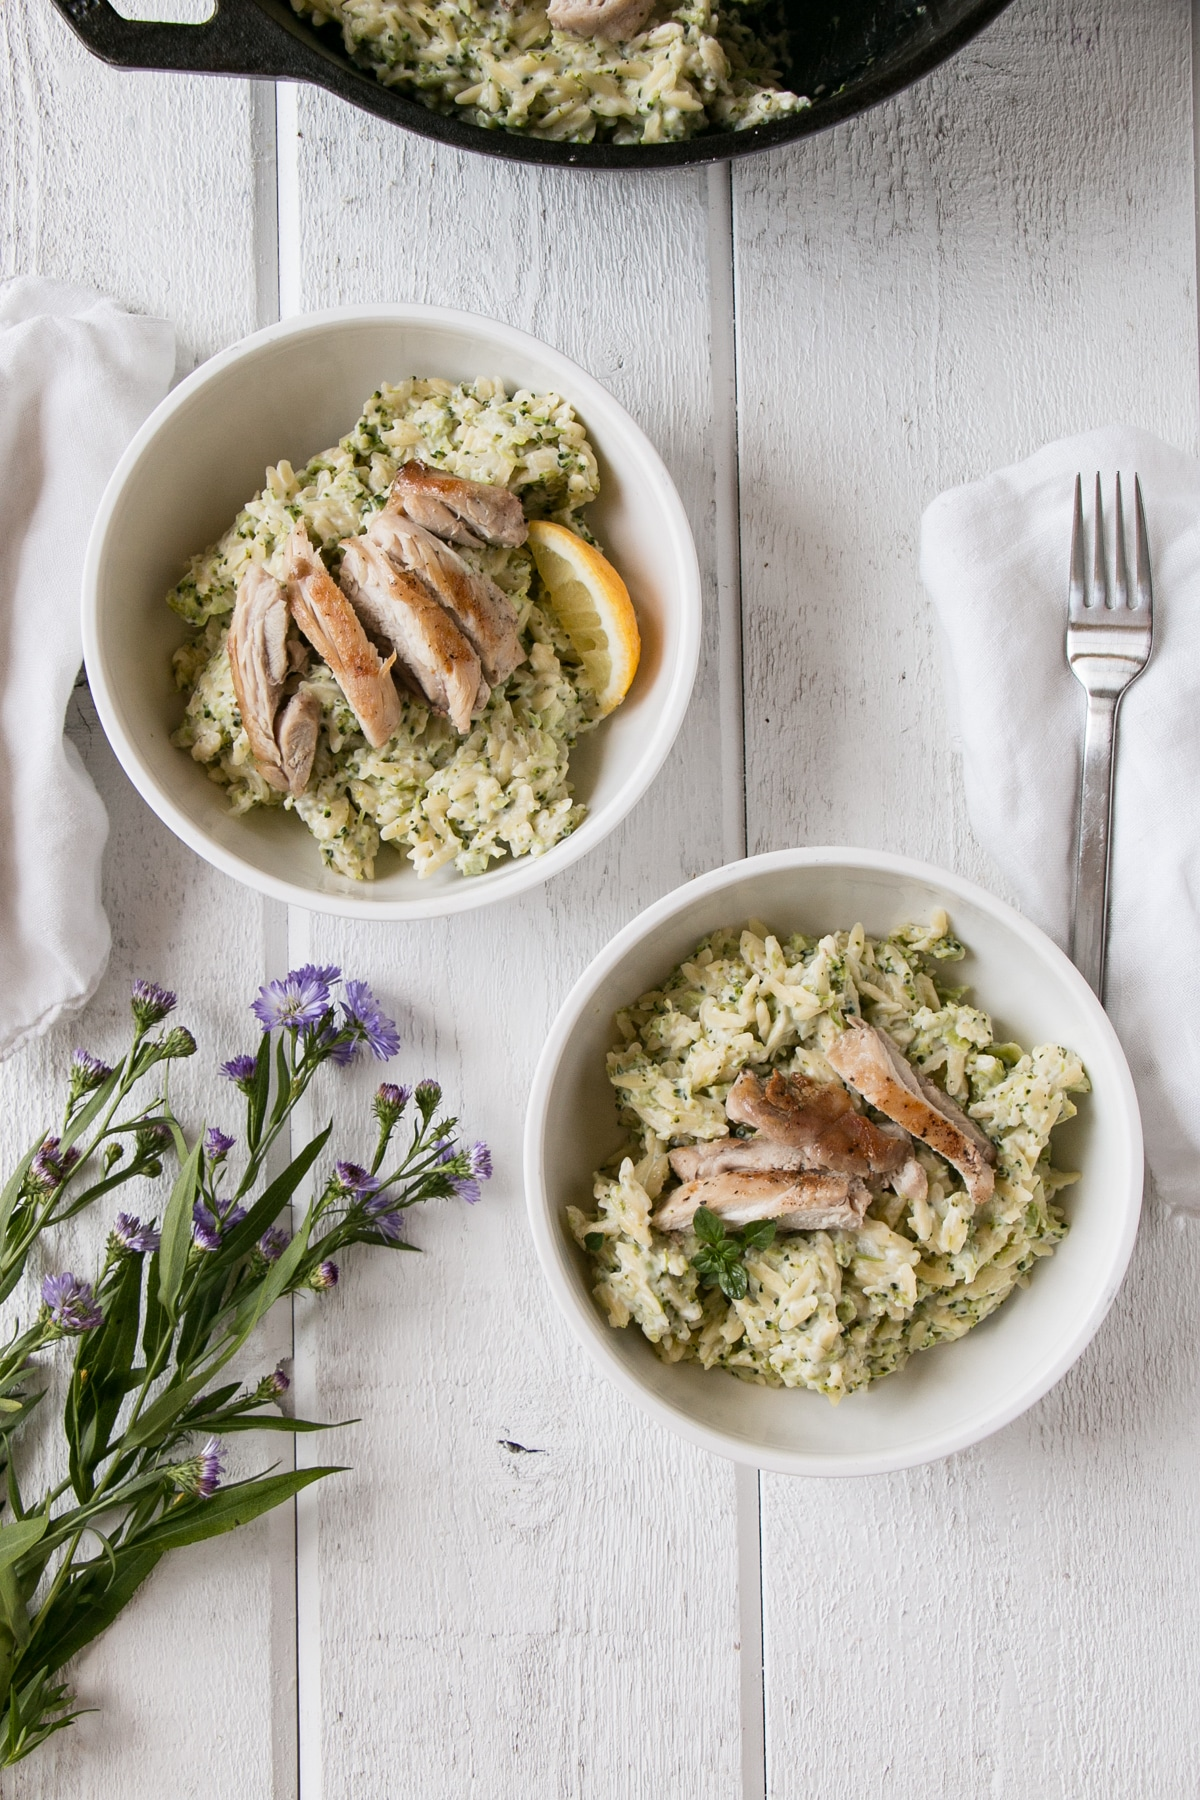 Broccoli and Goat's Cheese Orzo with chicken sliced on top in a white bowls.